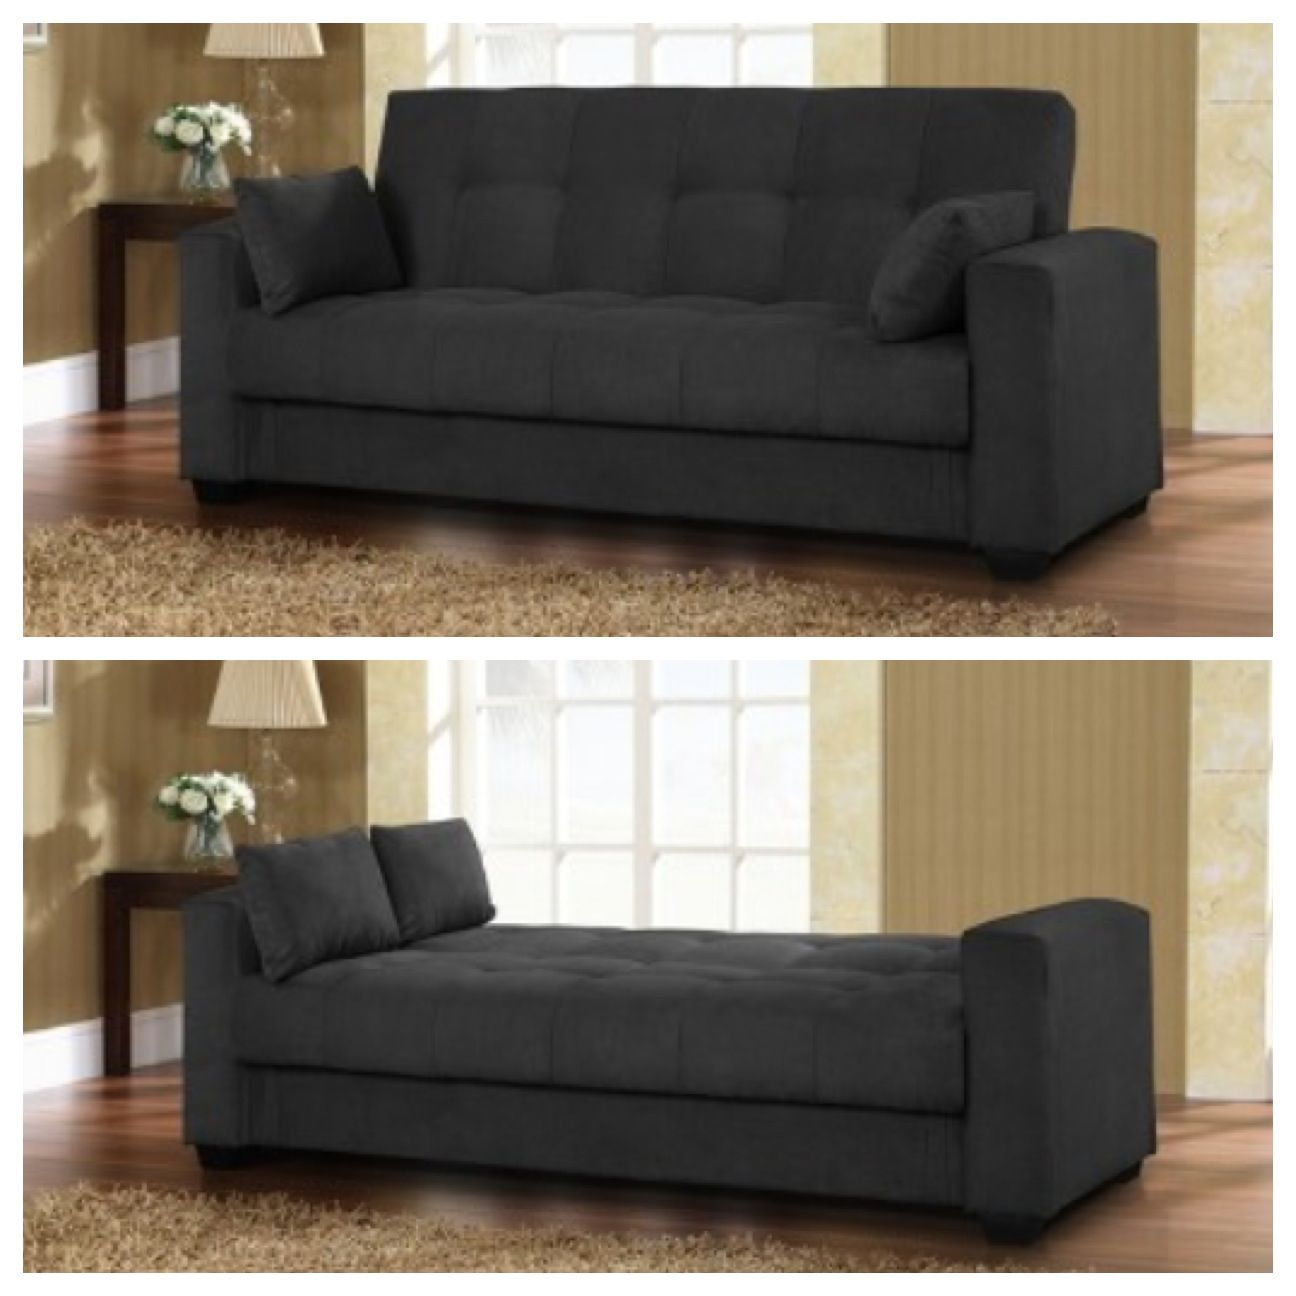 Tremendous Sleeper Sofa From Target Com Nyc Apartment Possibilities Ncnpc Chair Design For Home Ncnpcorg